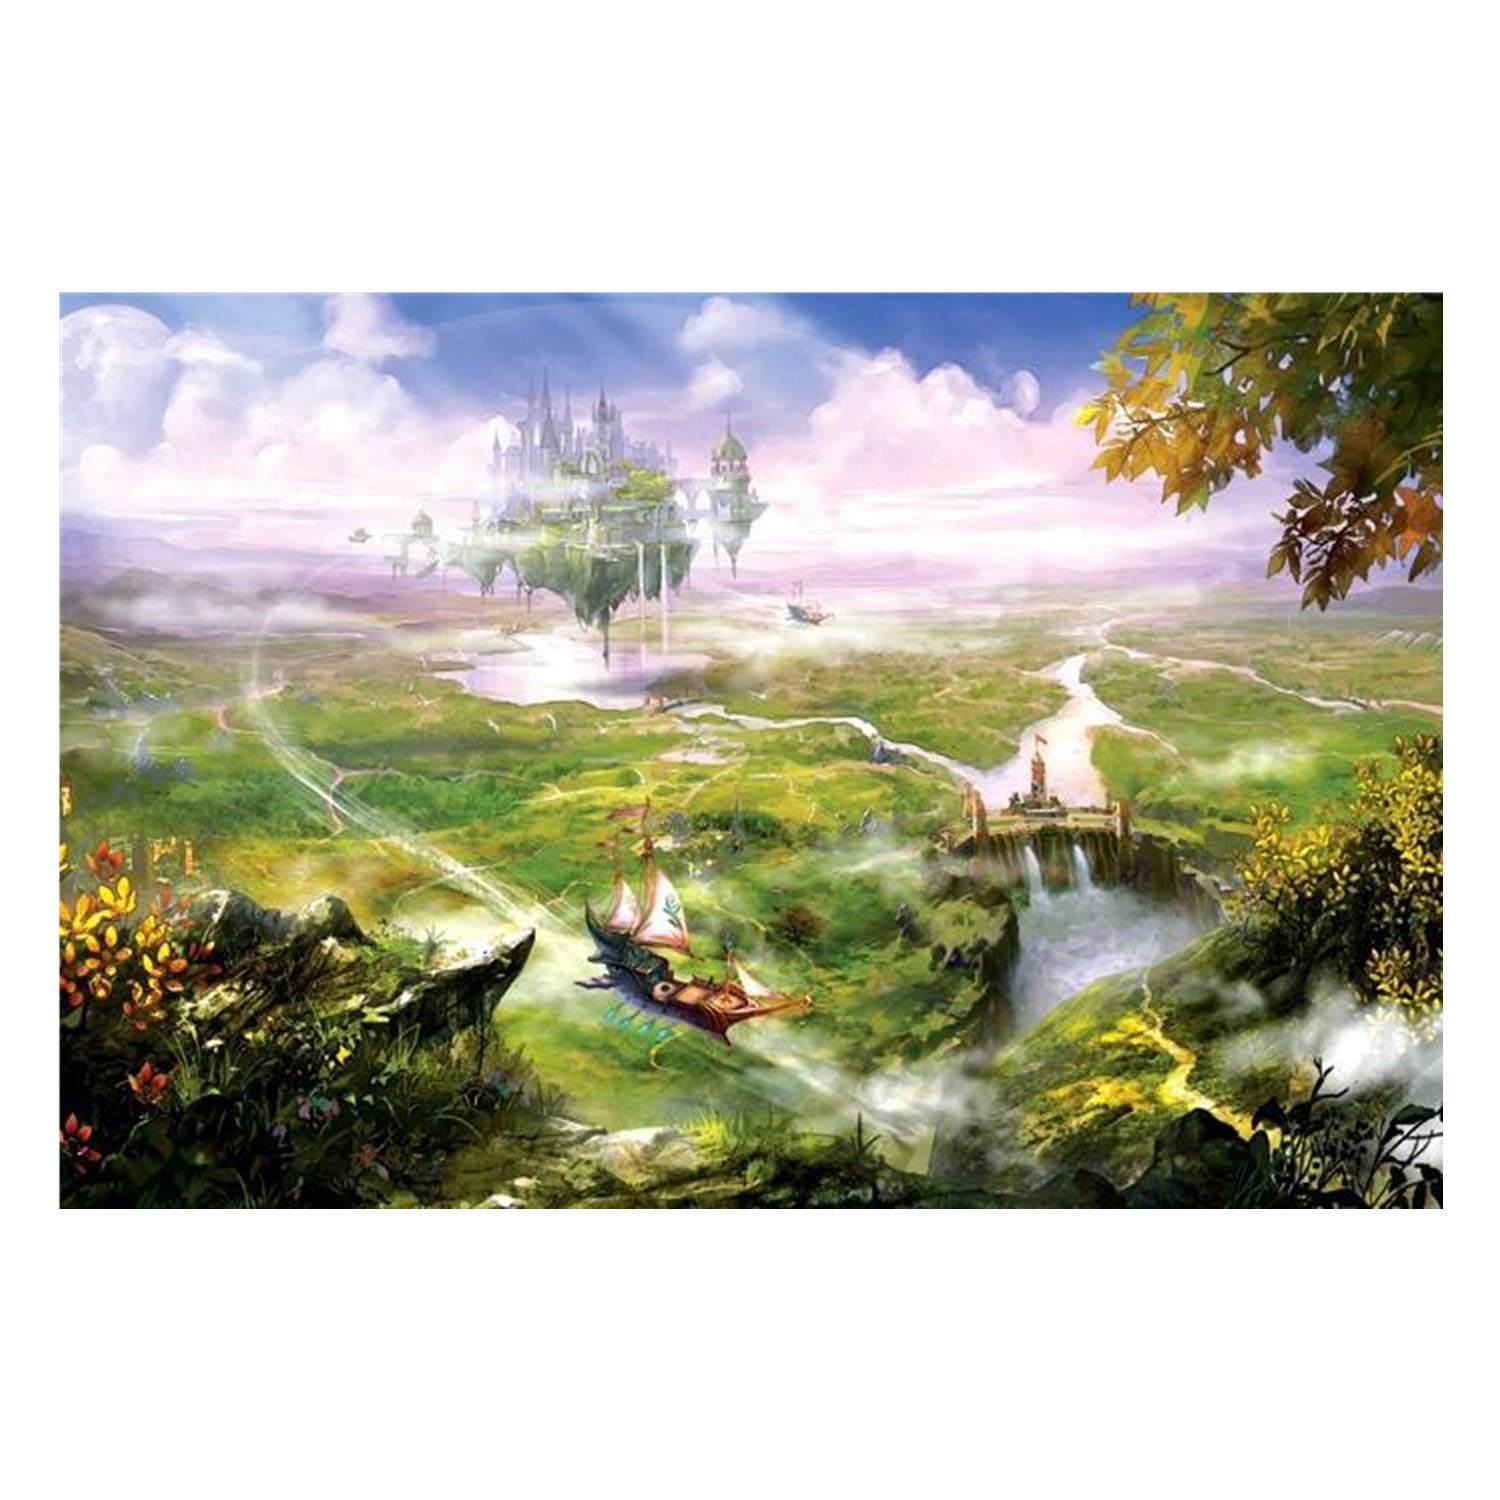 Jigsaw Puzzles 1000 Pieces for Adults(Suspension City)